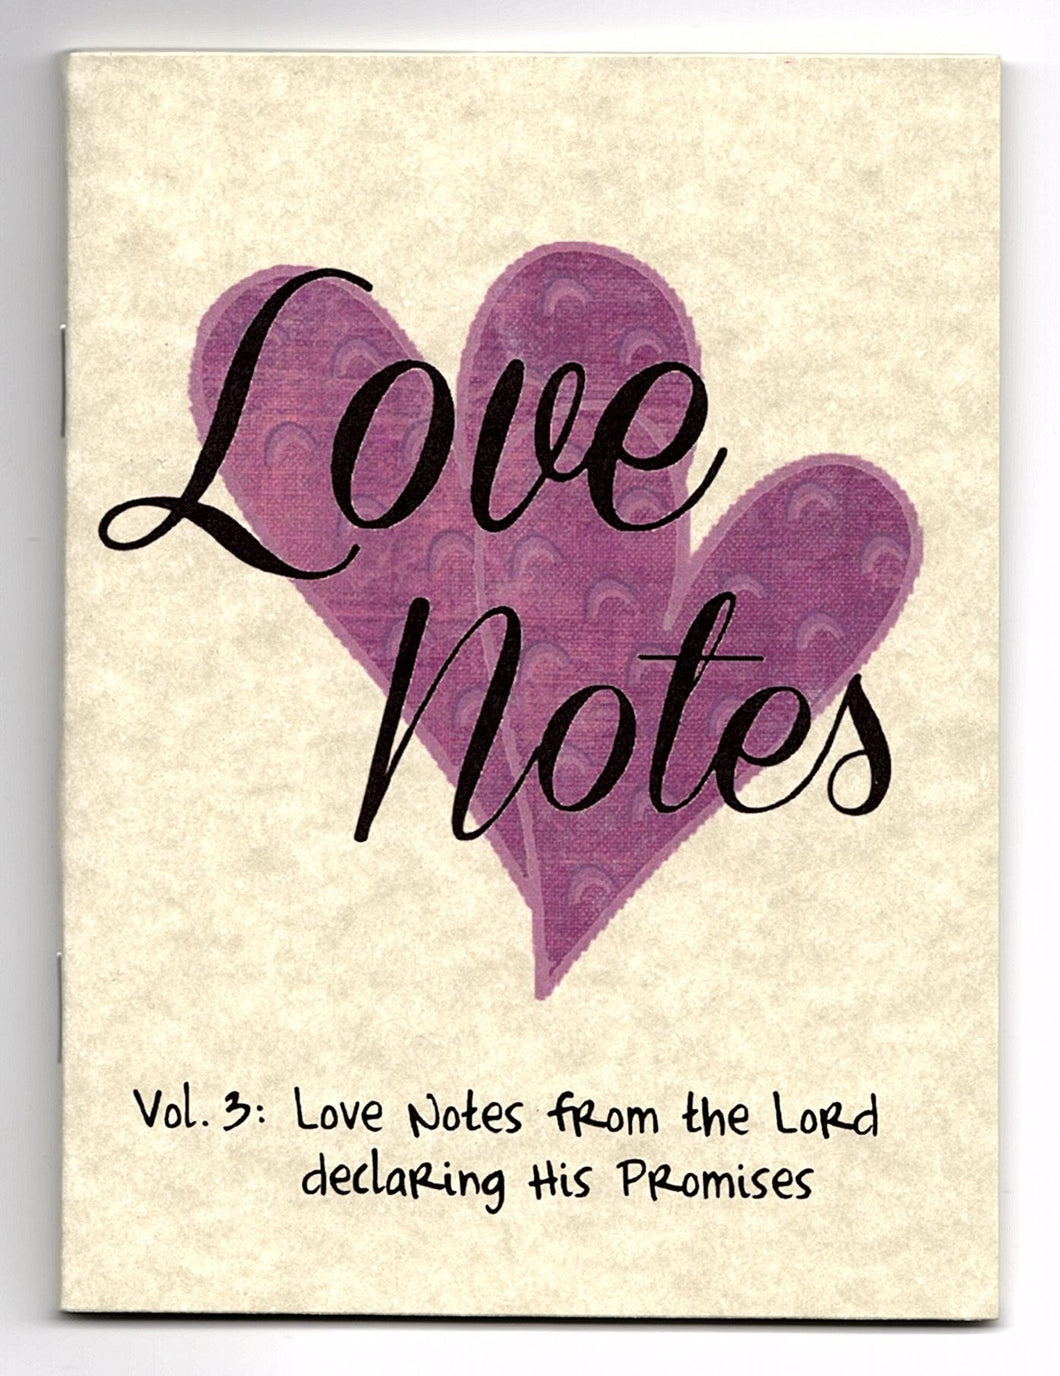 Love Notes Vol. 3: Love Notes from the Lord declaring His Promises